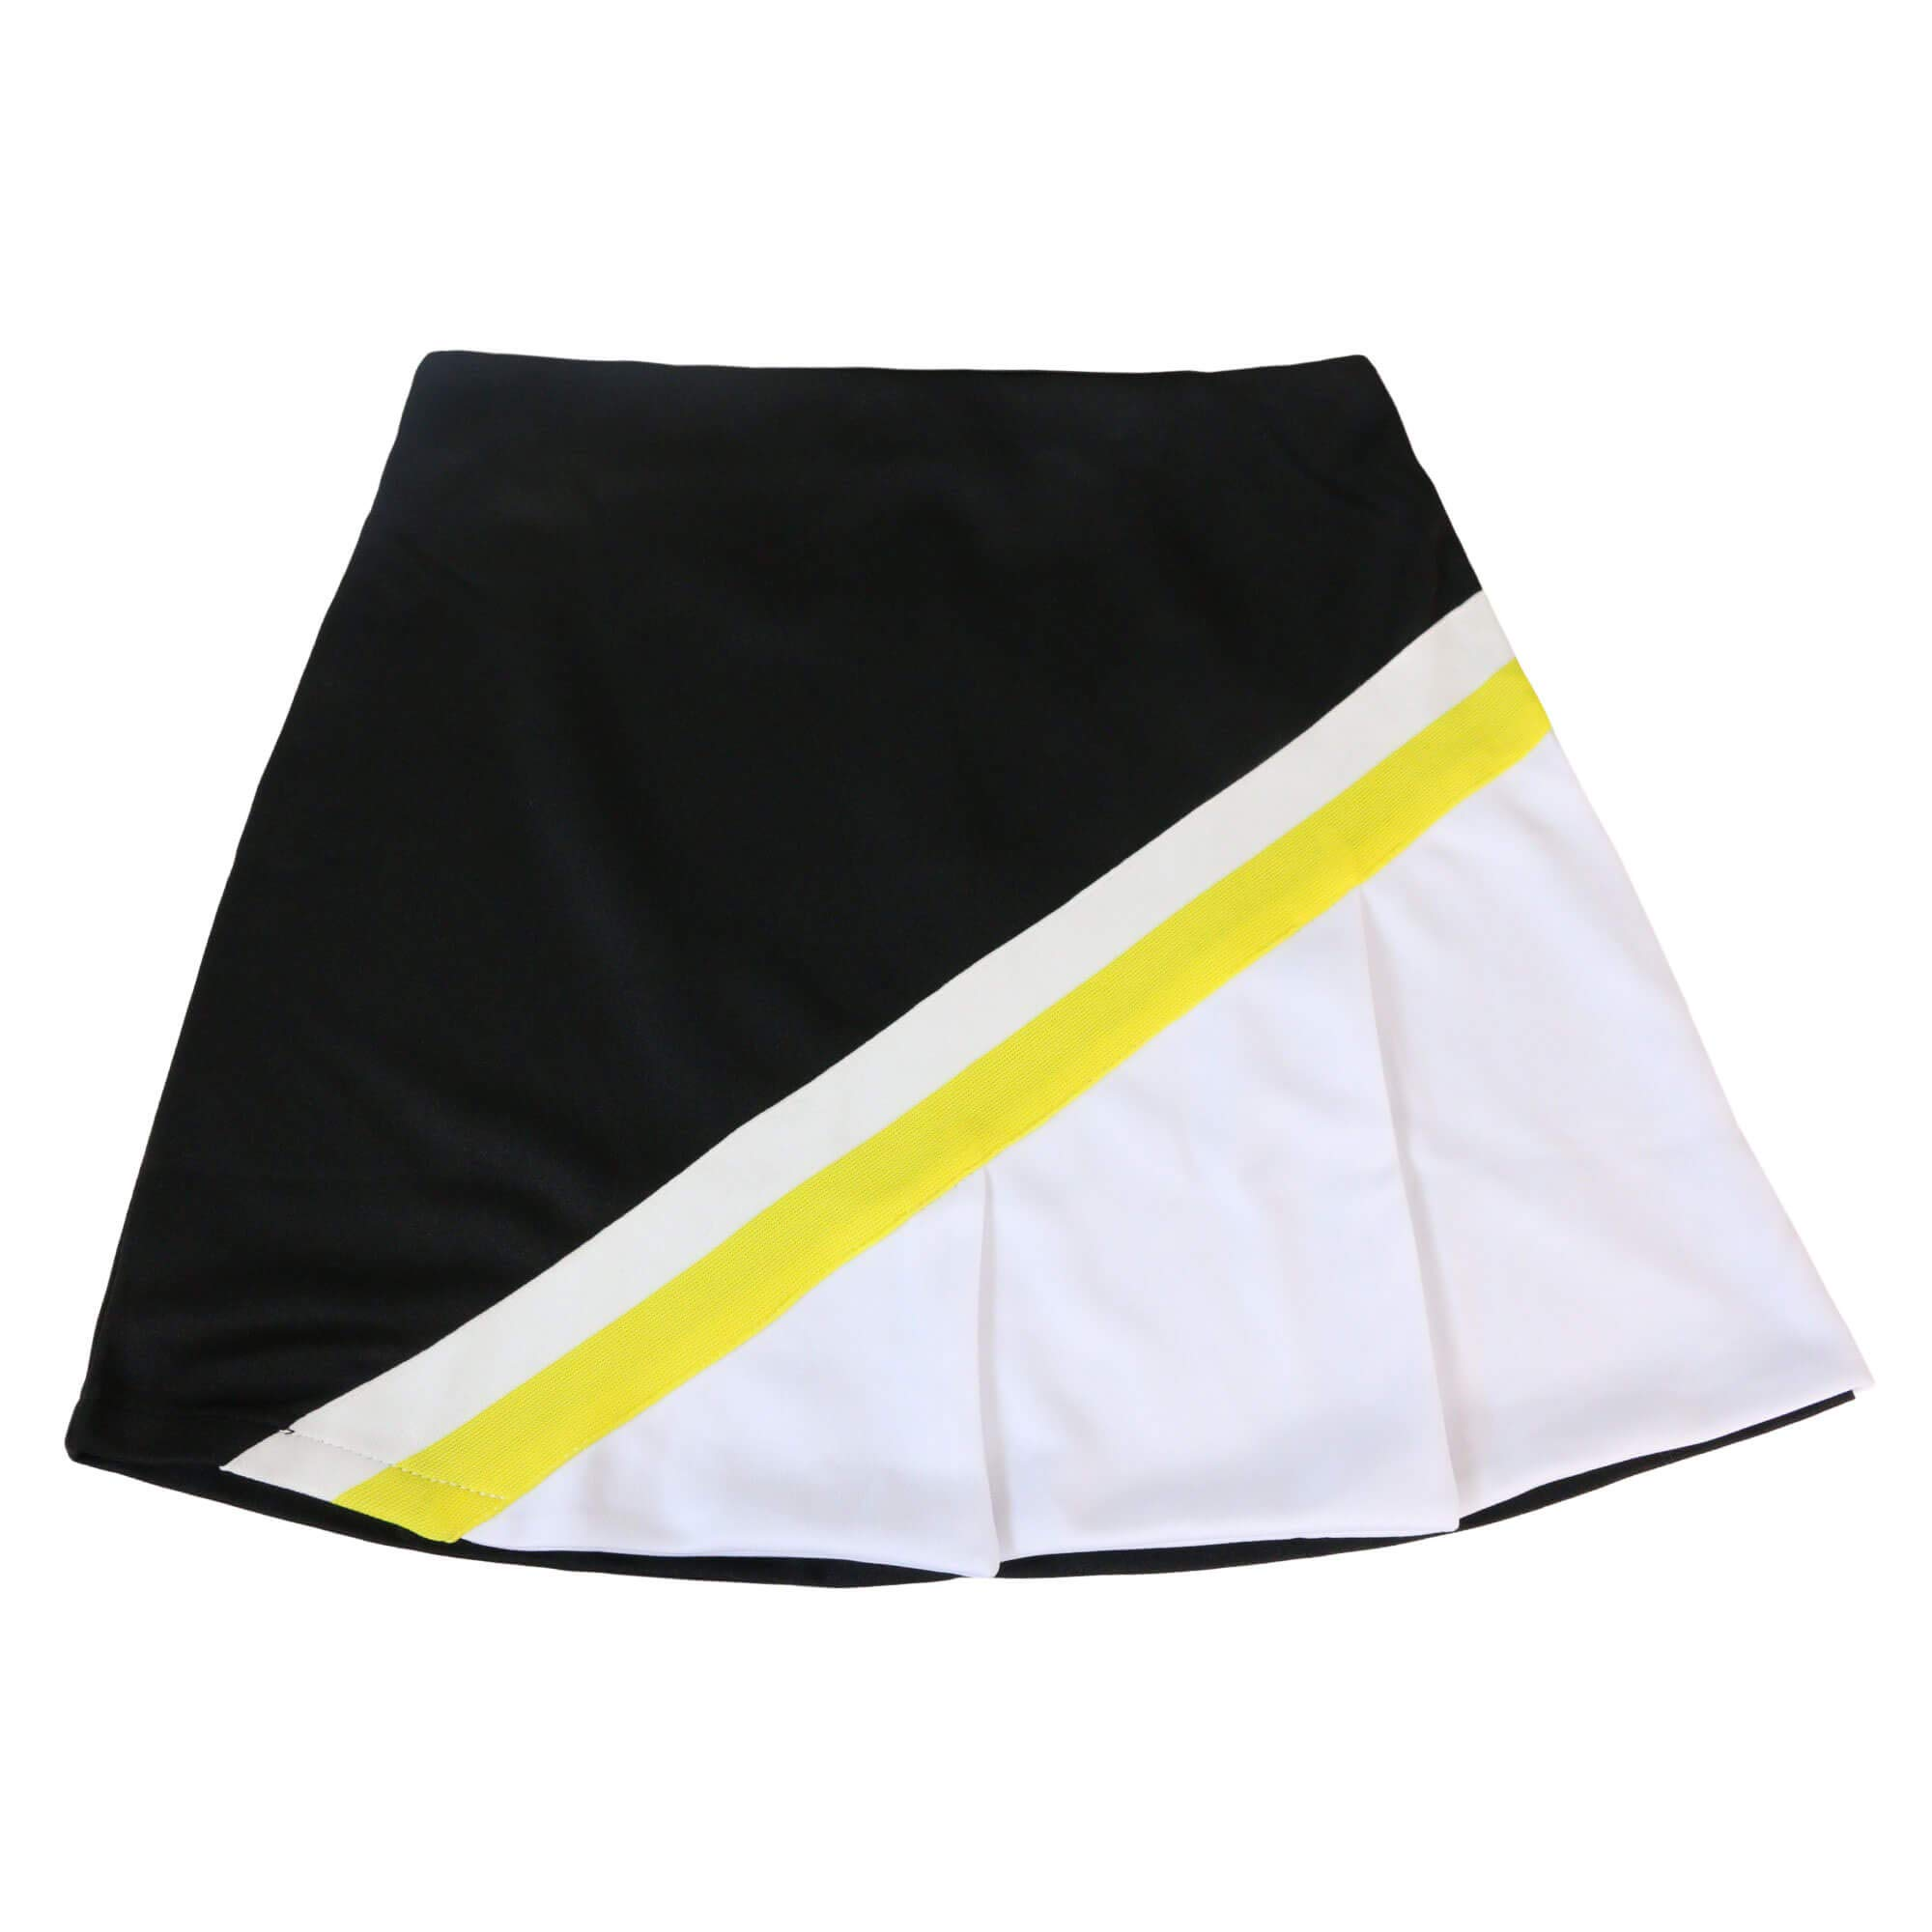 Danzcue Child Cheerleading A-Line Pleat Skirt, Black-White, Small by Danzcue